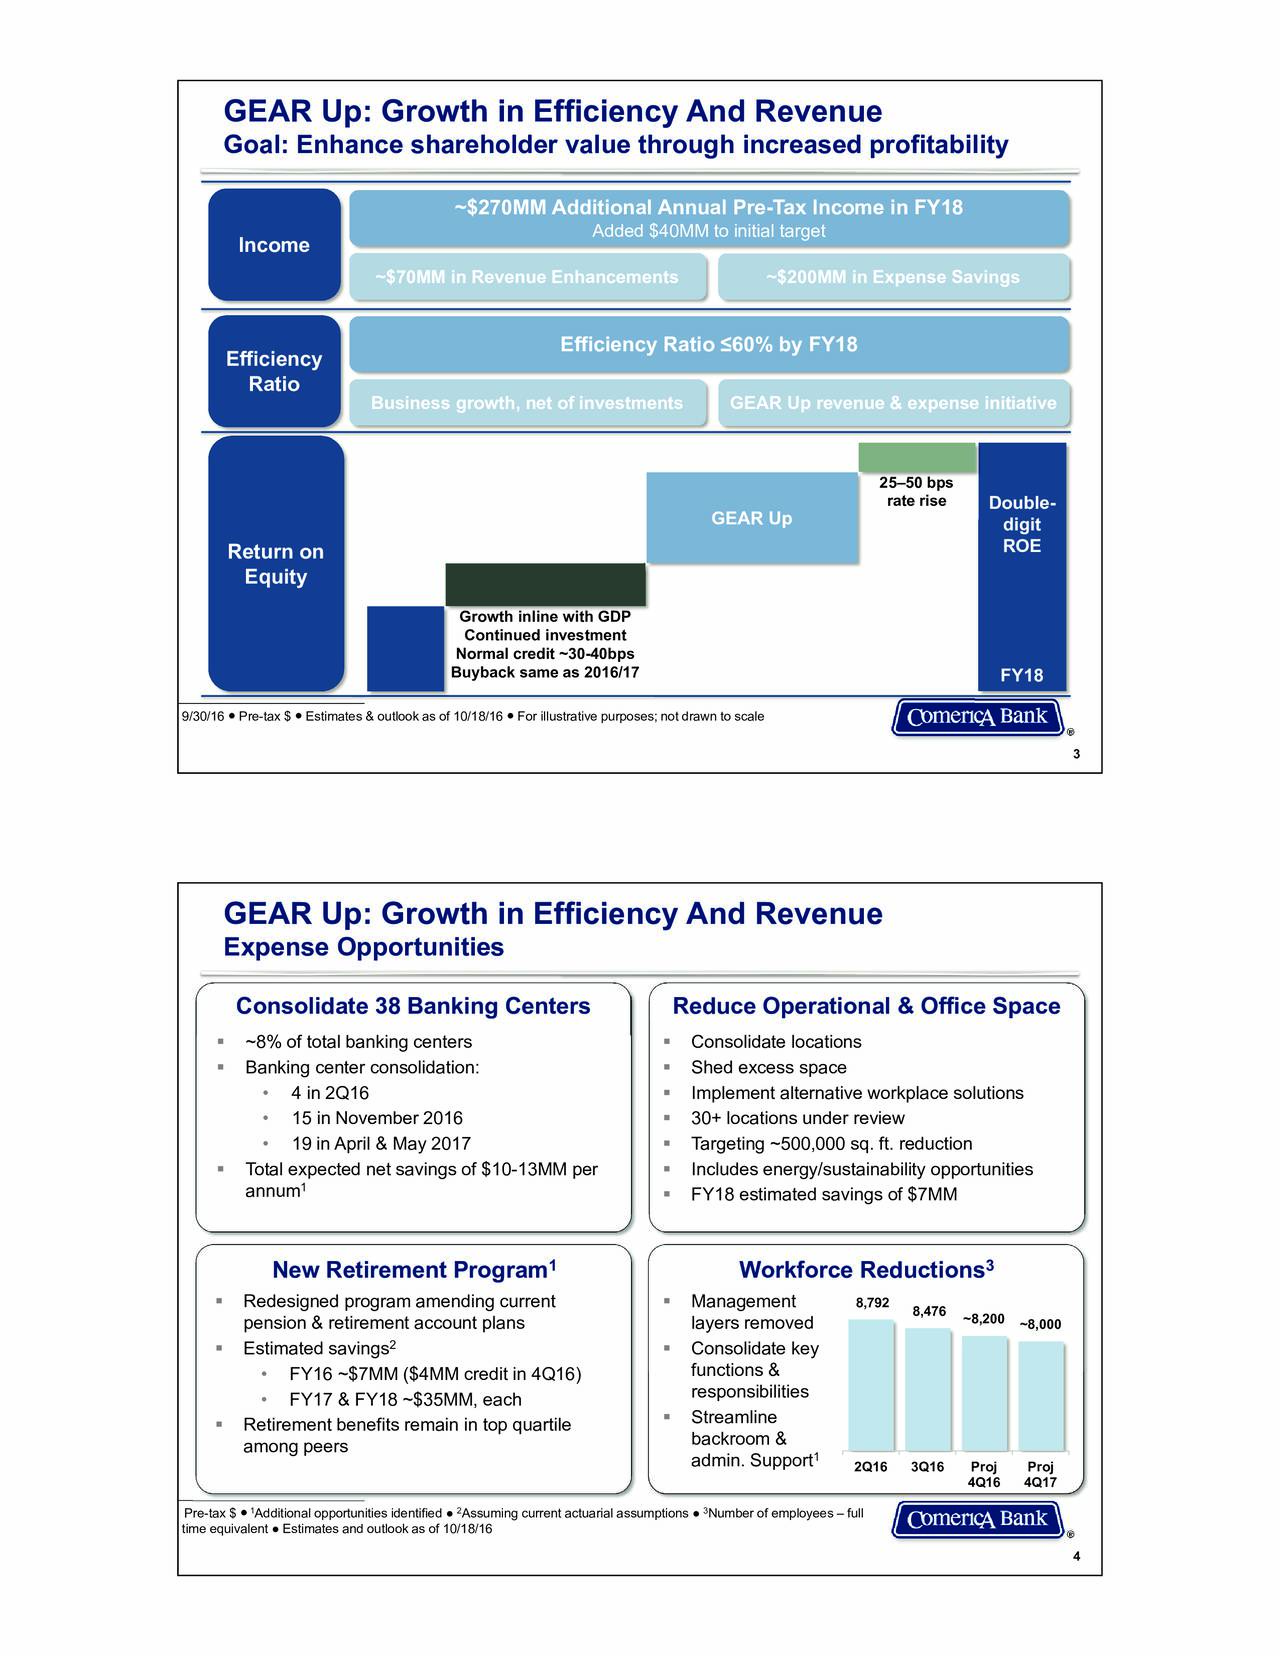 Goal: Enhance shareholder value through increased profitability ~$270MM Additional Annual Pre-Tax Income in FY18 Added $40MM to initial target Income ~$70MM in Revenue Enhancements ~$200MM in Expense Savings Efficiency Ratio 60% by FY18 Efficiency Ratio Business growth, net of investments GEAR Up revenue & expense initiative 2550 bps rate rise Double- GEAR Up digit Return on ROE Equity Growth inline with GDP Continued investment Normal credit ~30-40bps Buyback same as 2016/17 FY18 9/30/16  Pre-tax $  Estimates & outlook as of 10/18/16 For illustrative purposes; not drawn to scale 3 Expense Opportunities Consolidate 38 Banking Centers Reduce Operational & Office Space ~8% of total banking centers  Consolidate locations Banking center consolidation:  Shed excess space 4 in 2Q16  Implement alternative workplace solutions 15 in November 2016  30+ locations under review 19 in April & May 2017  Targeting ~500,000 sq. ft. reduction Total expected net savings of $10-13MM per  Includes energy/sustainability opportunities annum 1  FY18 estimated savings of $7MM 1 3 New Retirement Program Workforce Reductions Redesigned program amending current  Management 8,792 8,476 pension & retirement account plans layers removed ~8,200~8,000 2 Estimated savings  Consolidate key FY16 ~$7MM ($4MM credit in 4Q16) functions & responsibilities FY17 & FY18 ~$35MM, each Retirement benefits remain in top quartile  Streamline backroom & among peers admin. Support1 2Q16 3Q16 Proj Proj 4Q16 4Q17 1 2 3 Pre-tax $  Additional opportunities identified  Assuming current actuarial assumptions  Number of employees  full time equivalent  Estimates and outlook as of 10/18/16 4